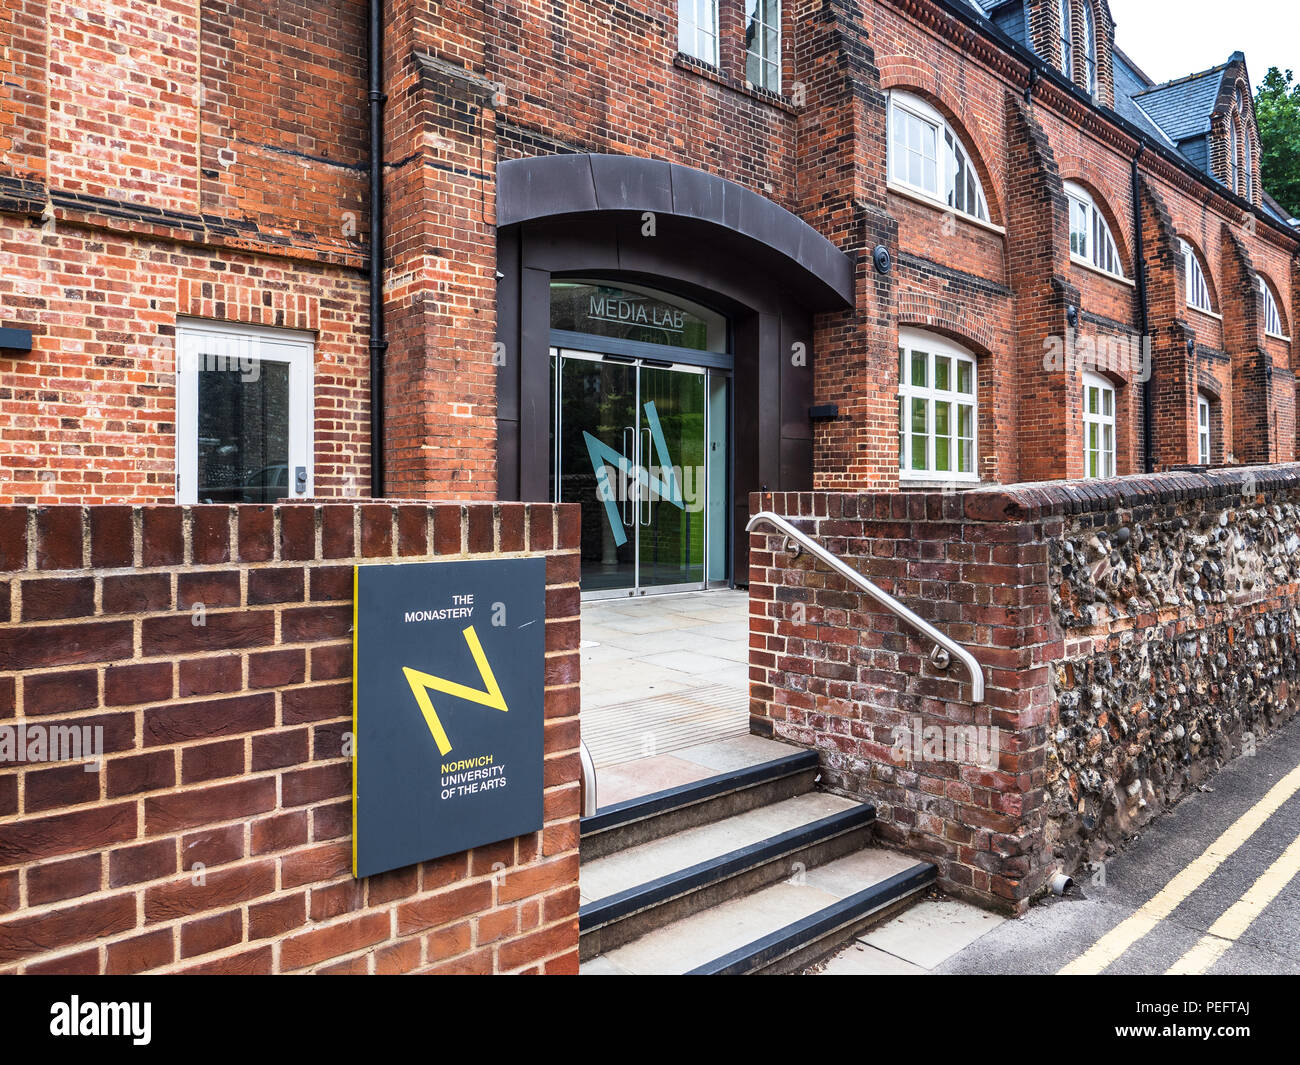 Norwich University Of The Arts High Resolution Stock Photography and Images  - Alamy